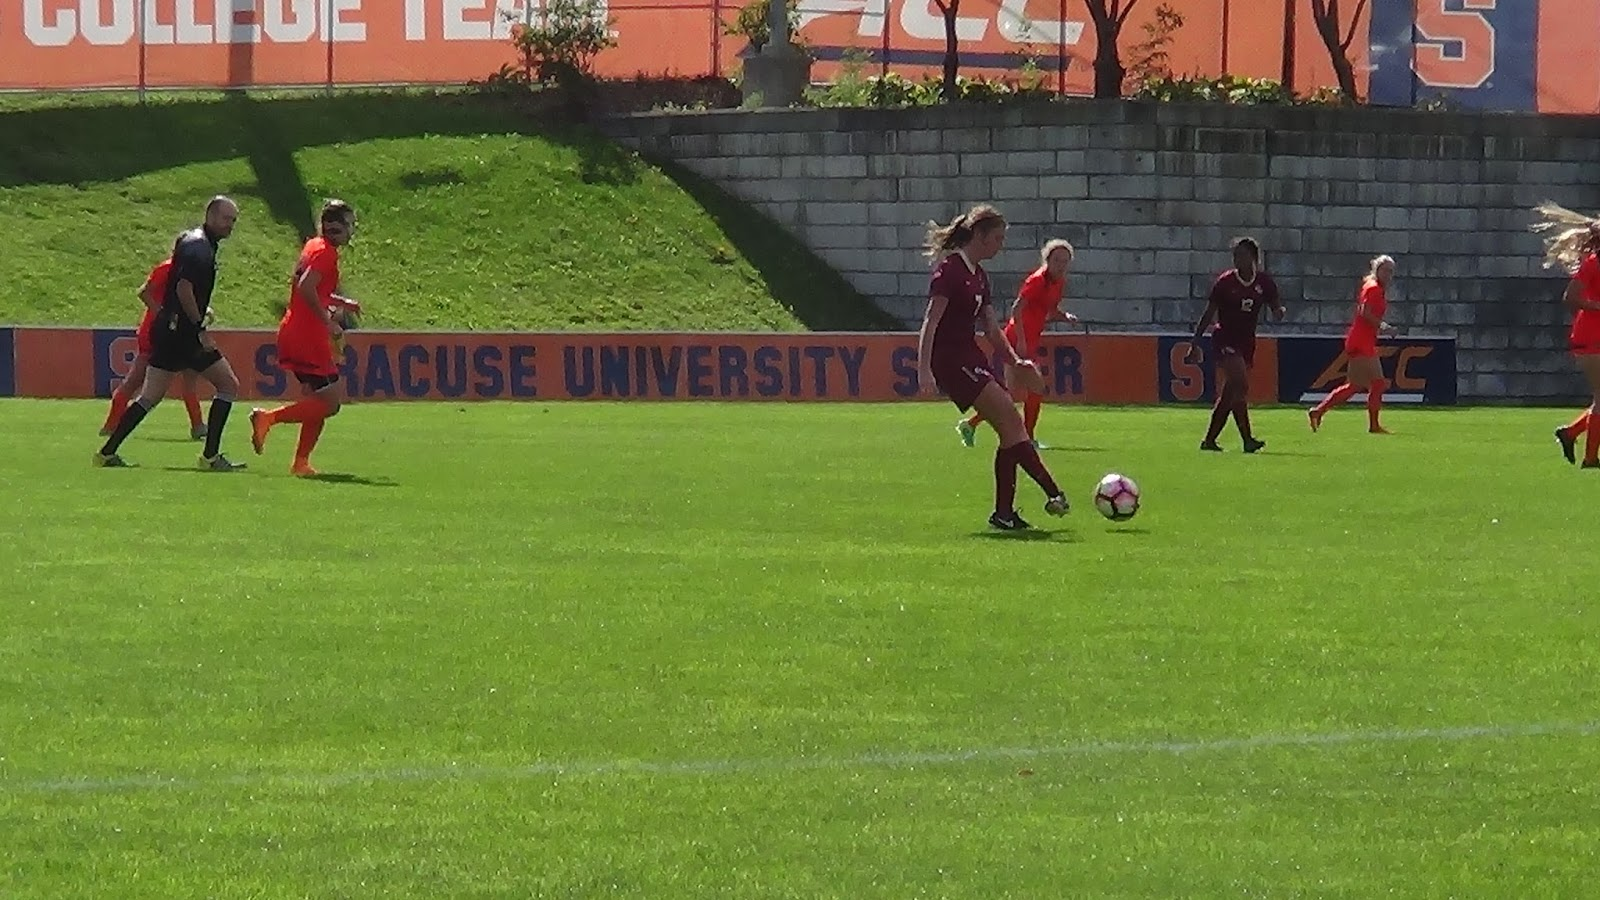 Women's Soccer: No. 2 Florida State and Syracuse Finish in a Draw